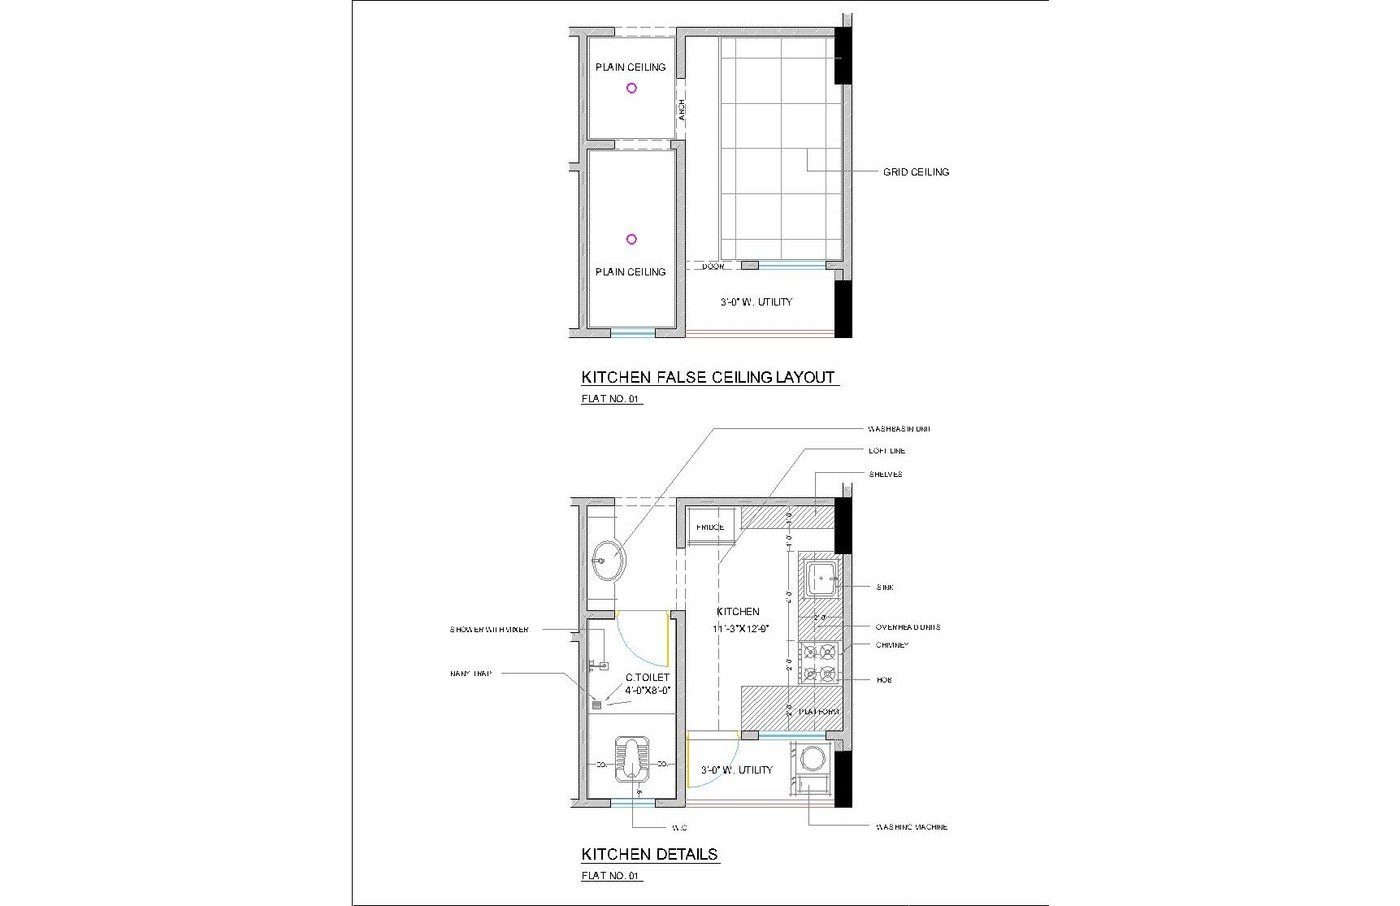 INTERIOR WORKING PLANS IN CAD 12 by Hitesh Bhoi at Coroflot com